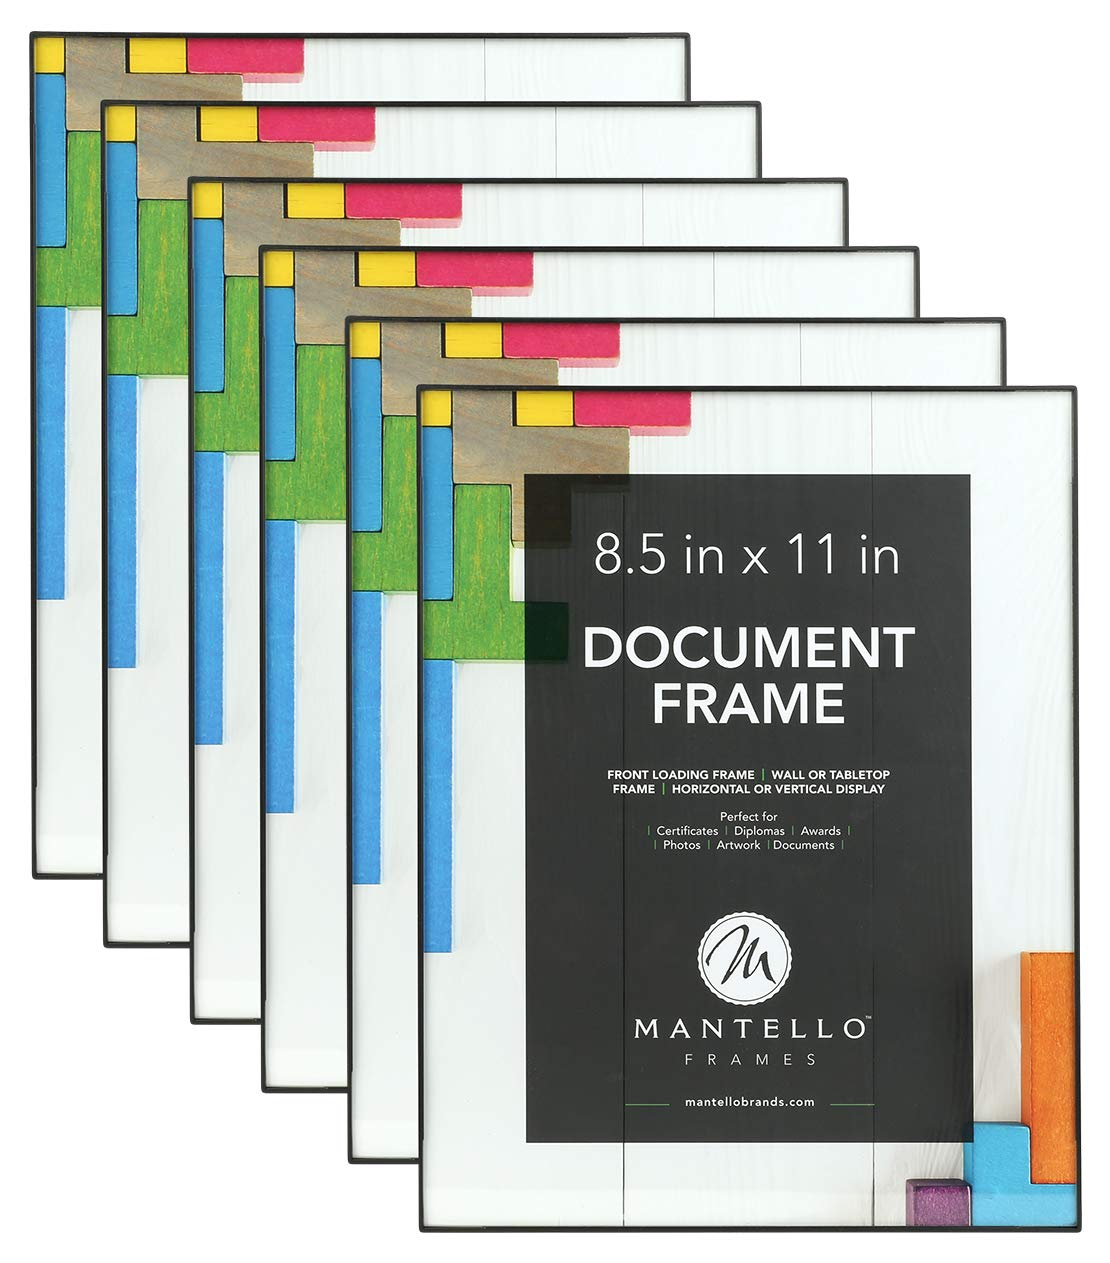 Mantello 8.5x11 Inch Picture Frame 6-Pack, Black, Front Loading Design, Certificate Diploma Document Frame by Mantello